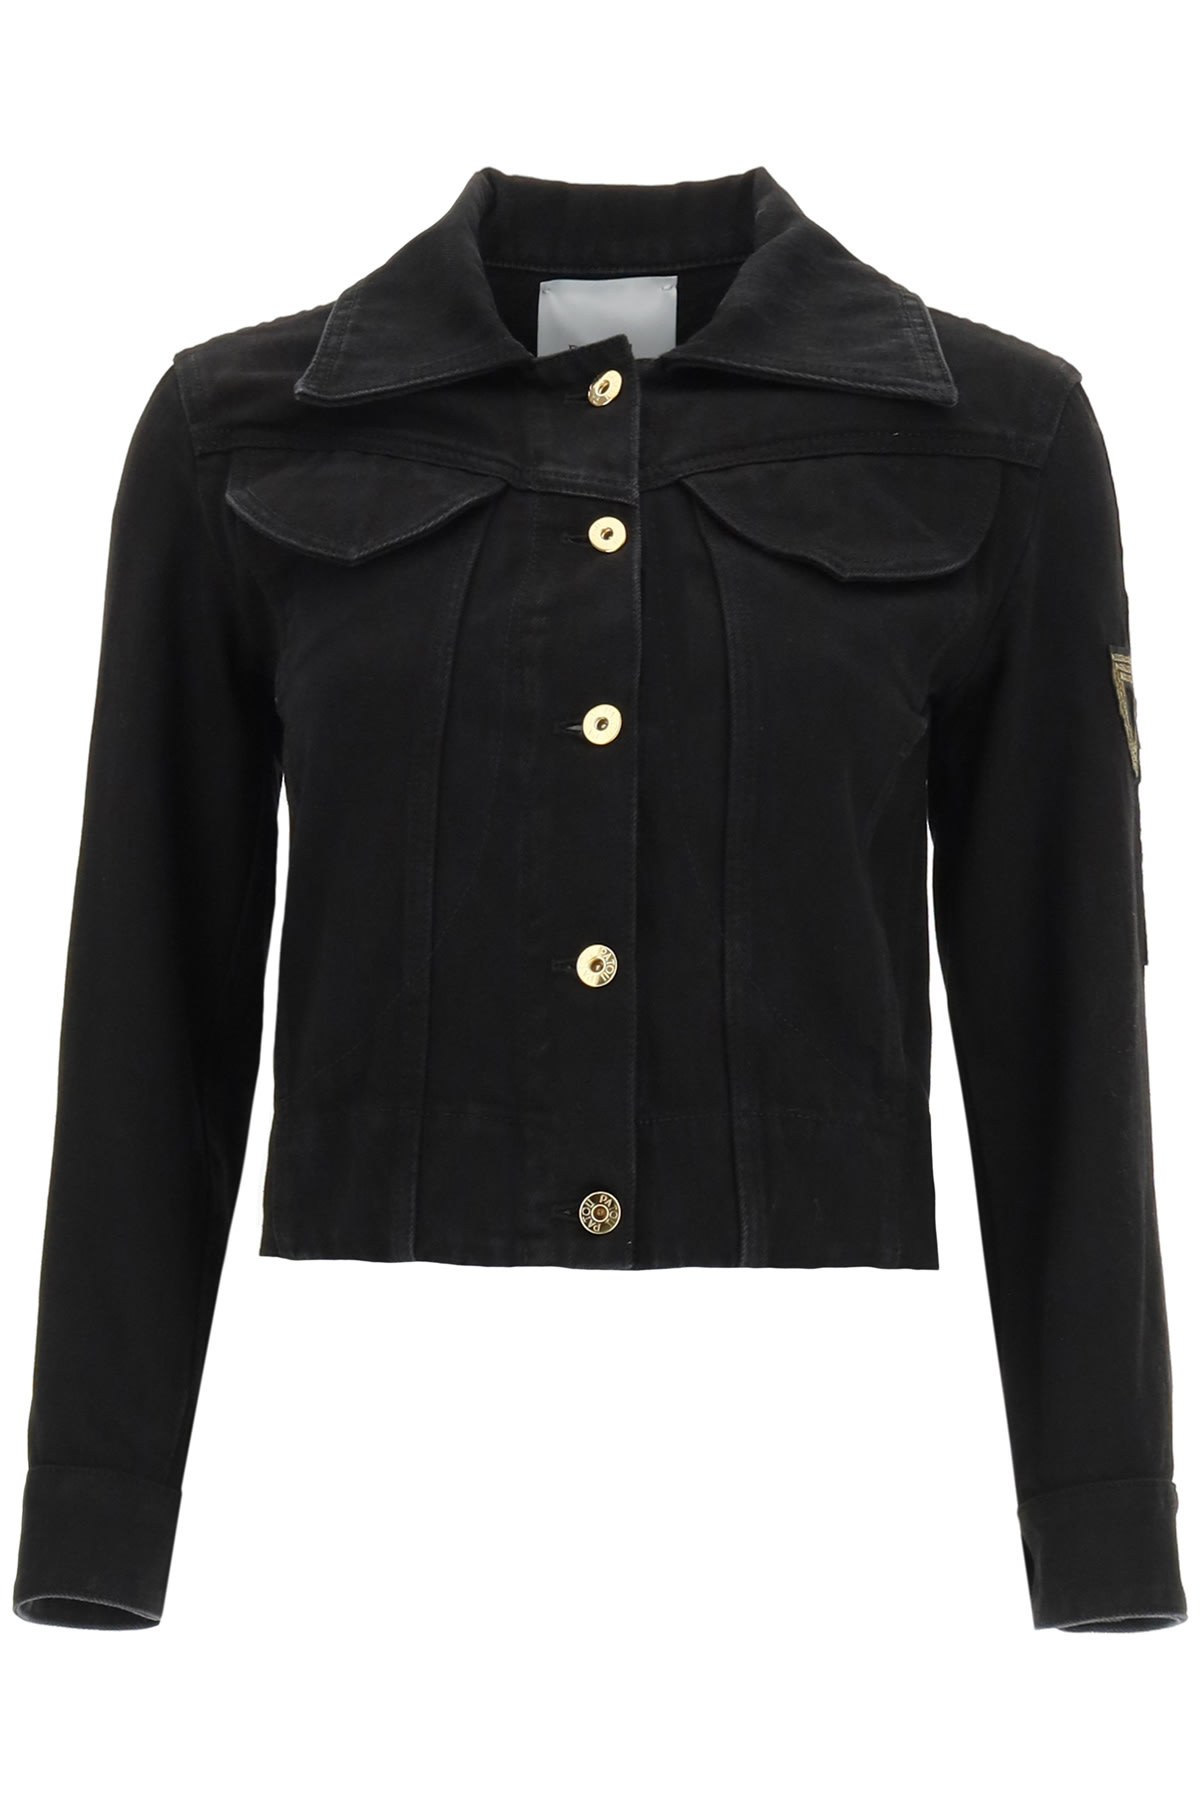 Patou JACKET IN ORGANIC DENIM WITH LOGO EMBROIDERY